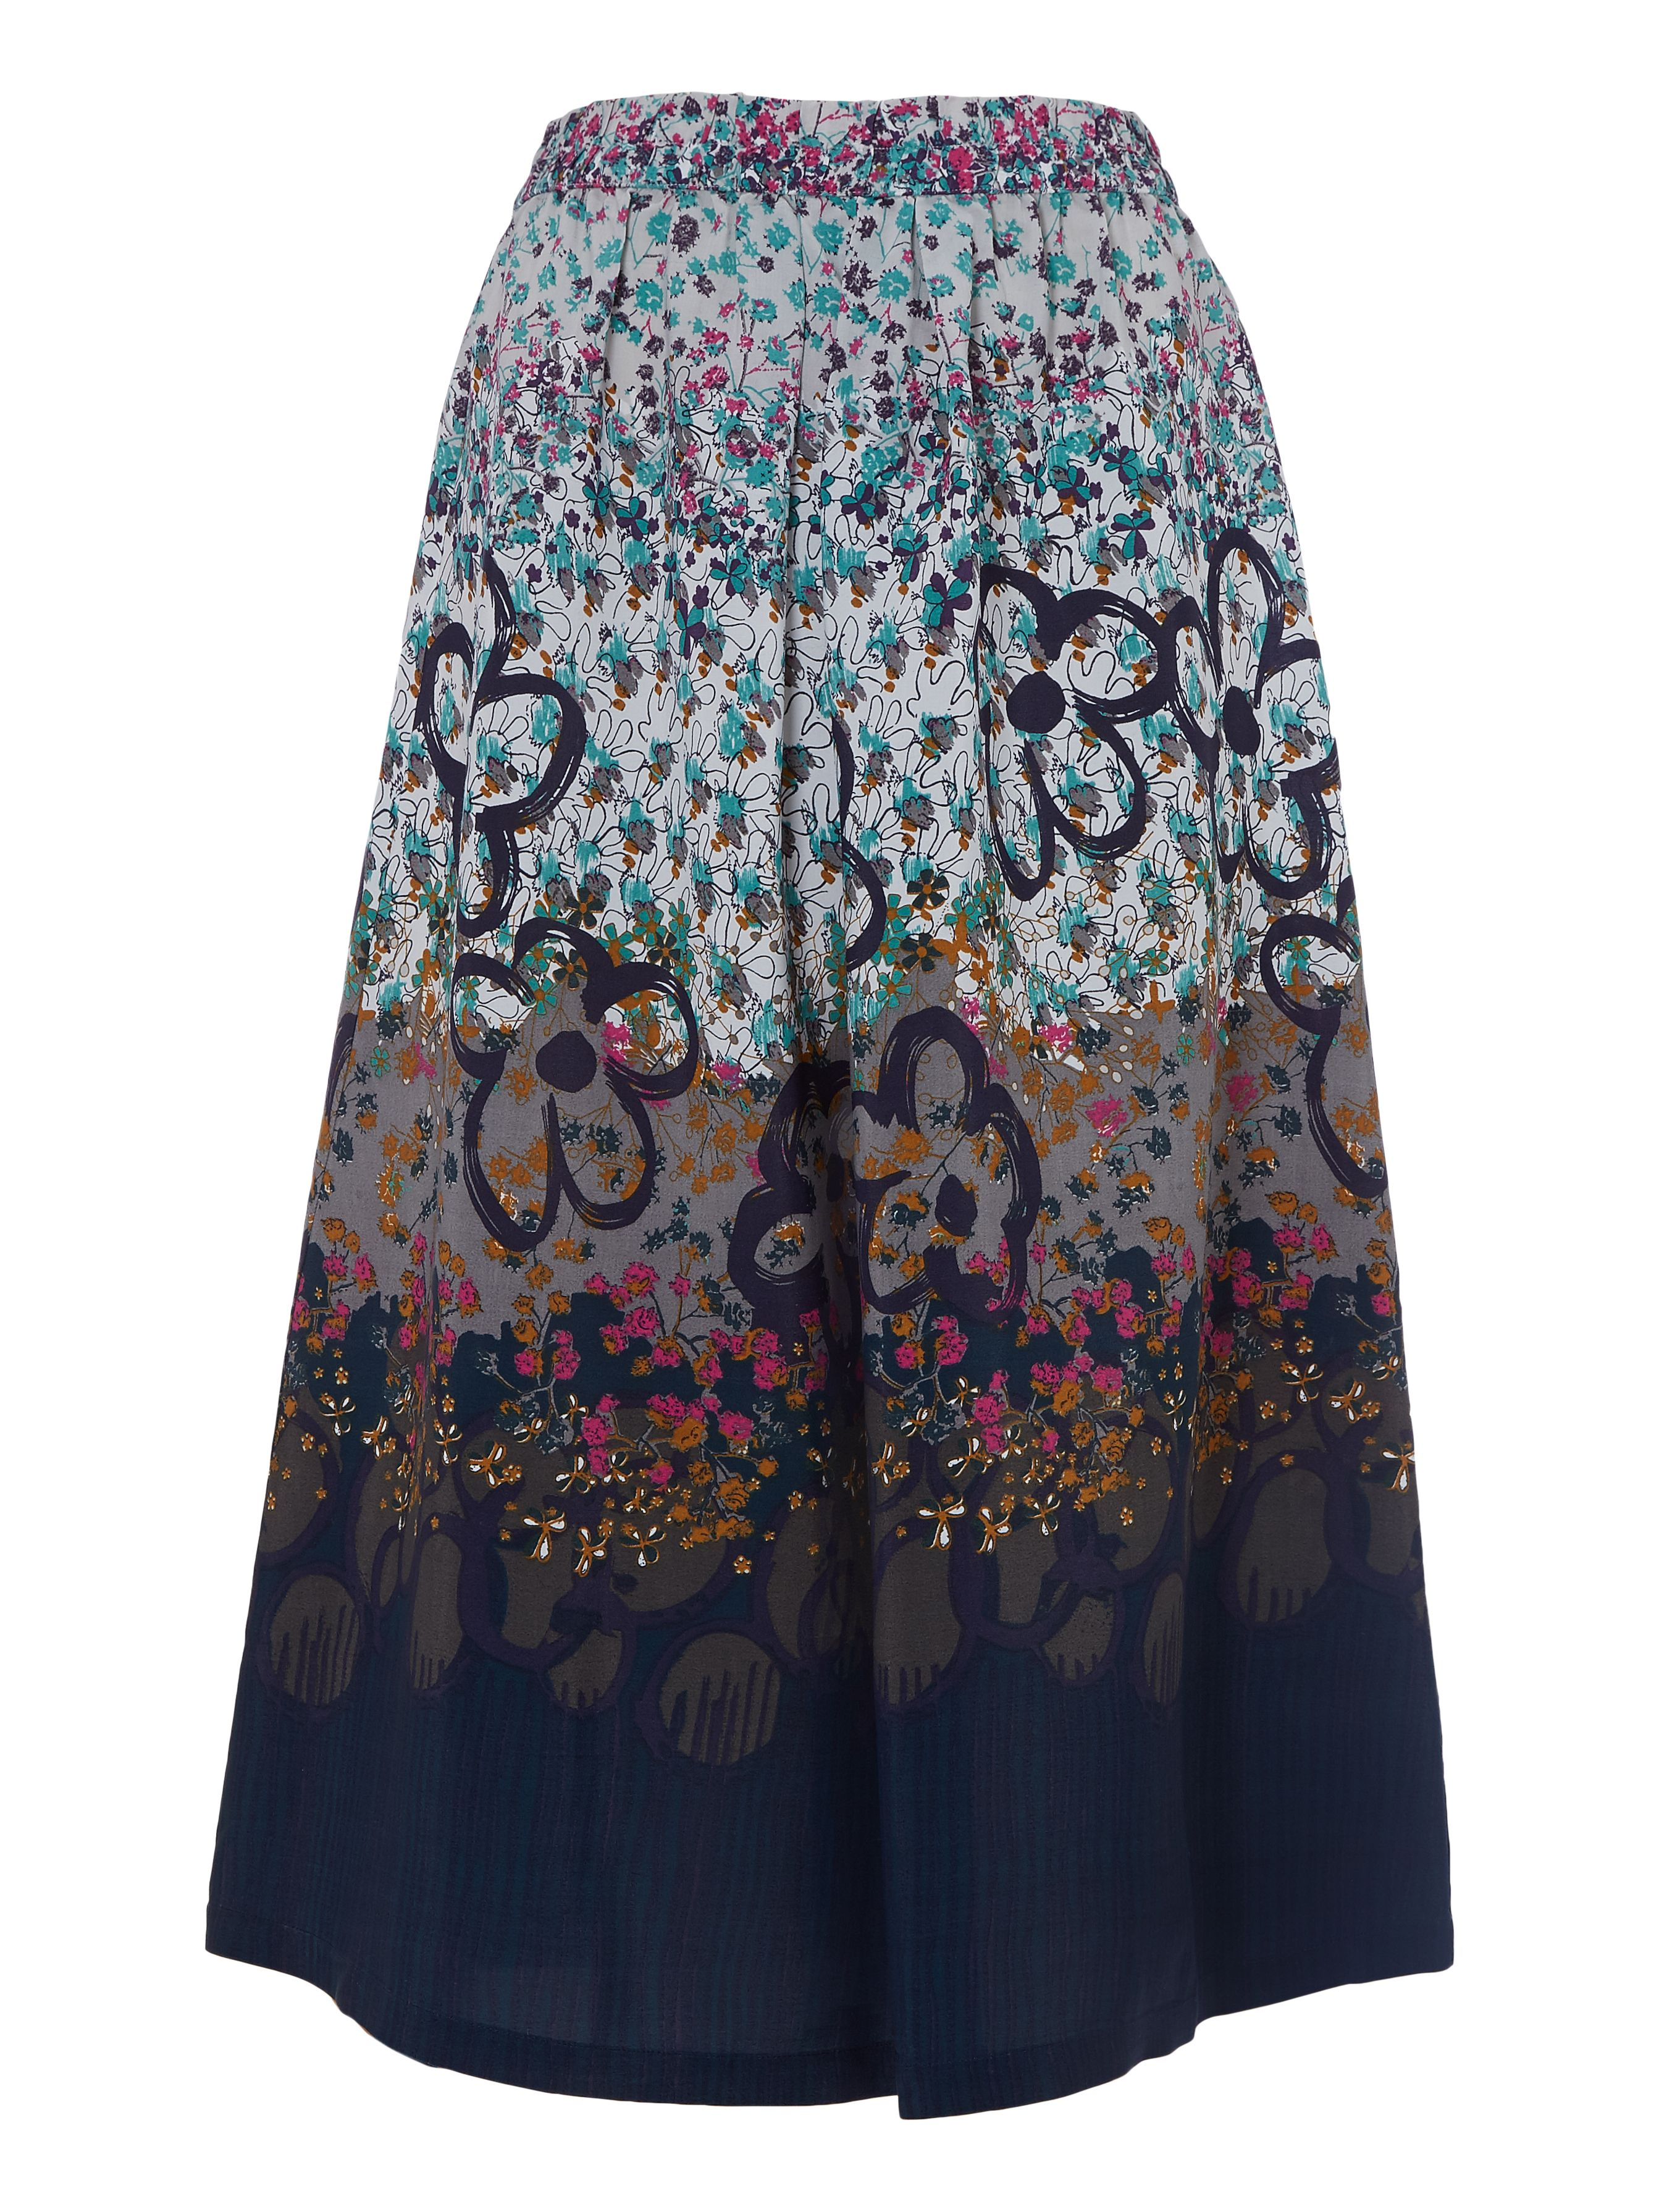 White Stuff Freesia Printed Midi Skirt, Multi-Coloured